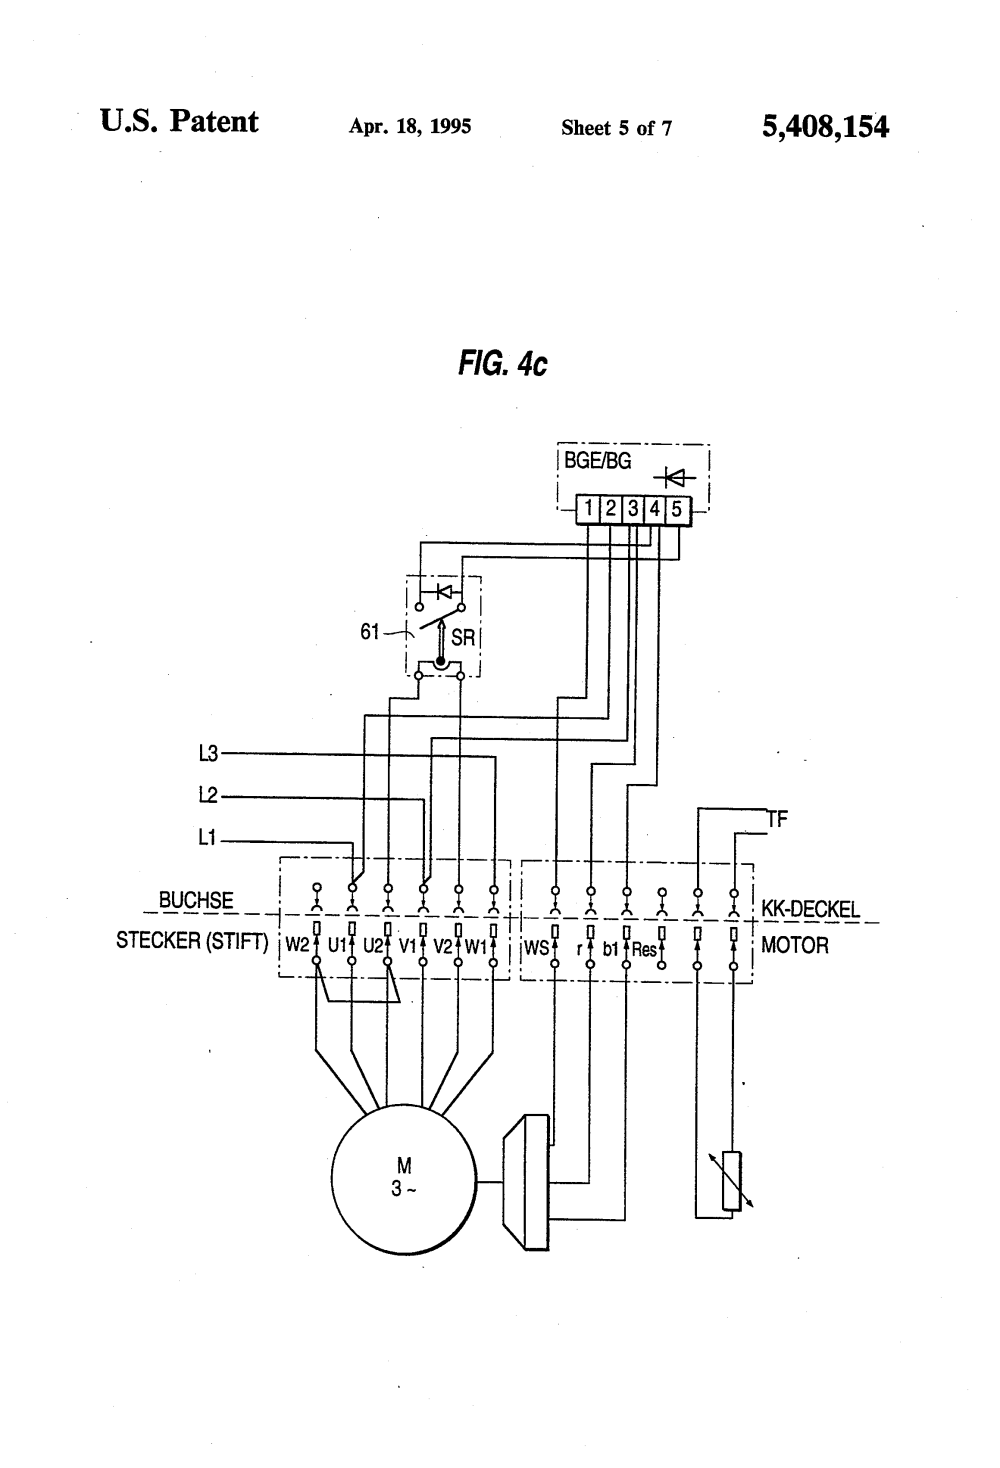 medium resolution of sew eurodrive wiring diagram schema wiring diagrams delta electric motor wiring diagrams patent us5408154 motor connection